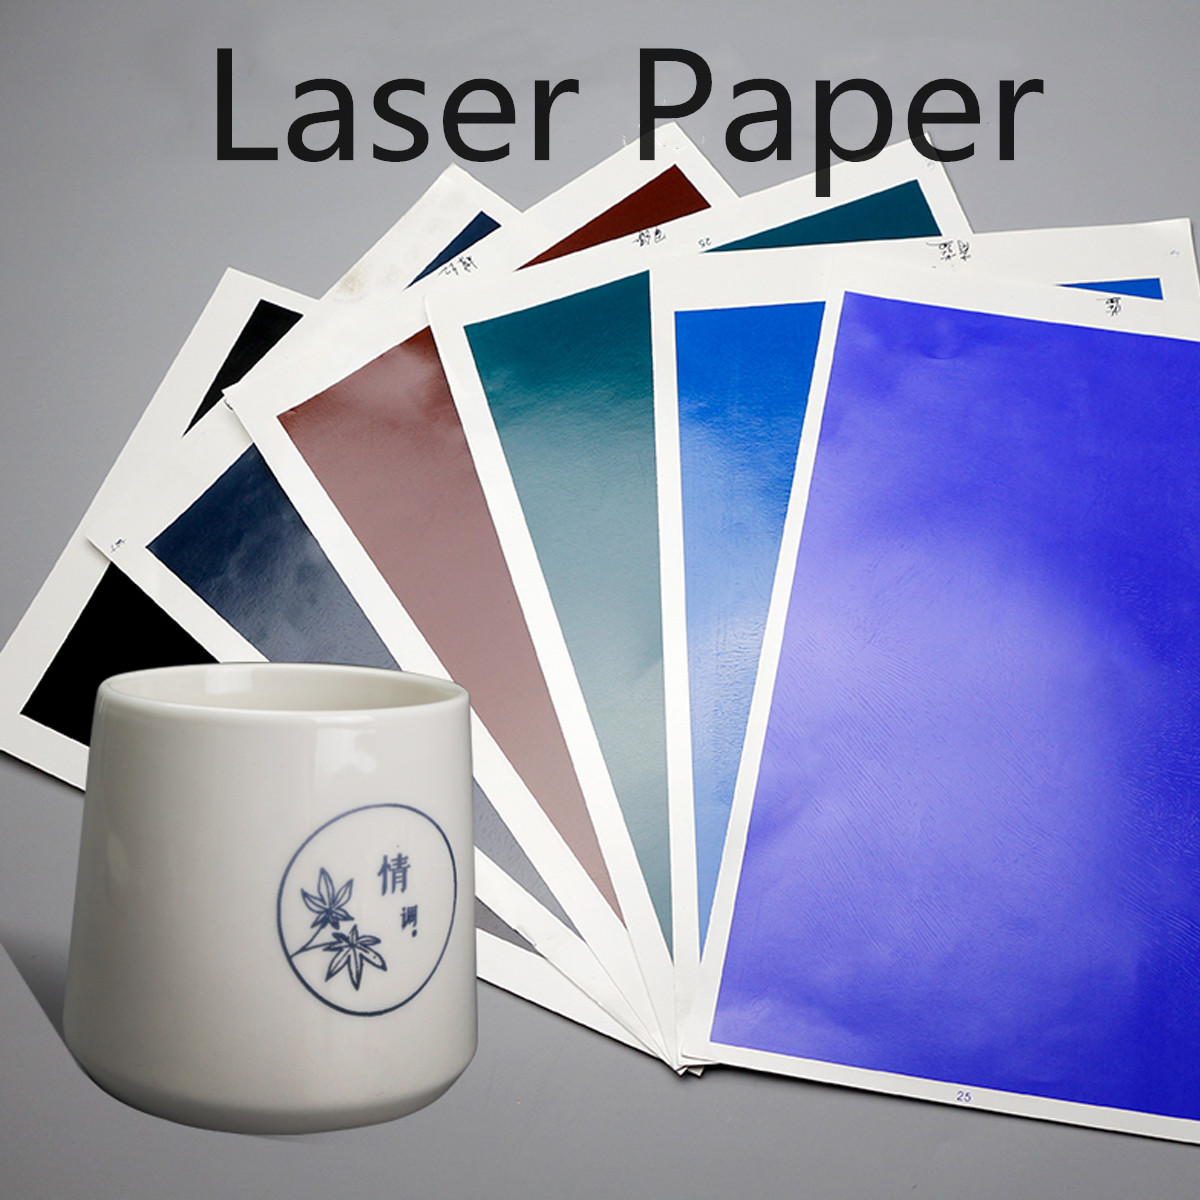 39CM*27CM Black/Gray/Blue/Green/Brown/Blue/Navy Ceramic Laser Paper For CNC Laser Engraving MachineLogo Mark Printer Cutter